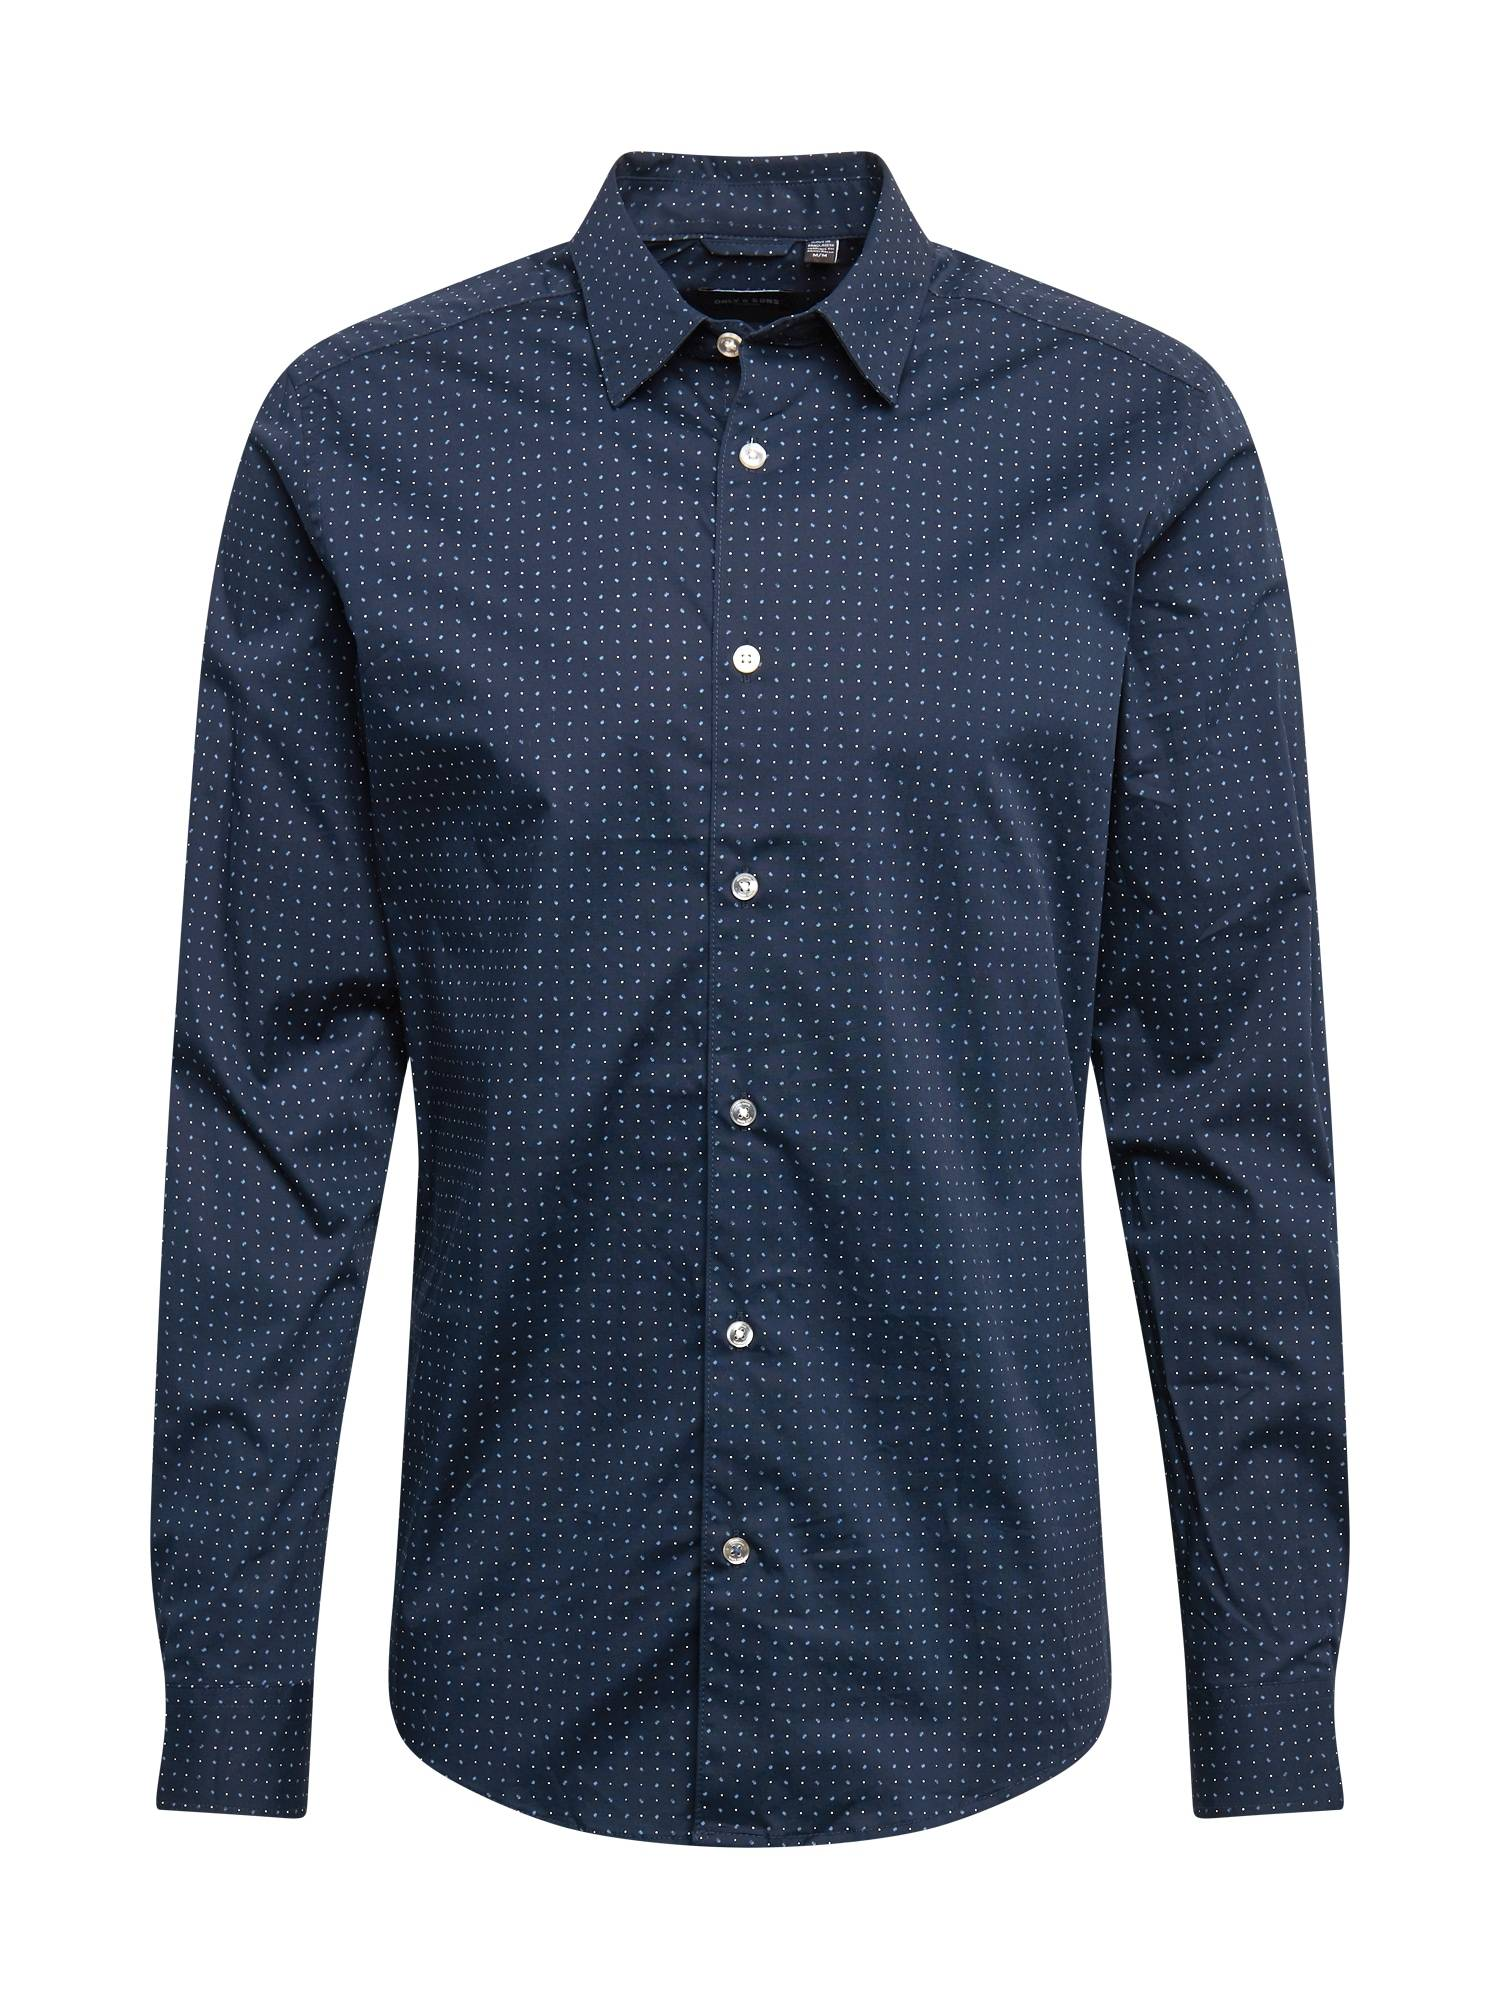 Only & Sons Chemise 'BART'  - Bleu - Taille: S - male